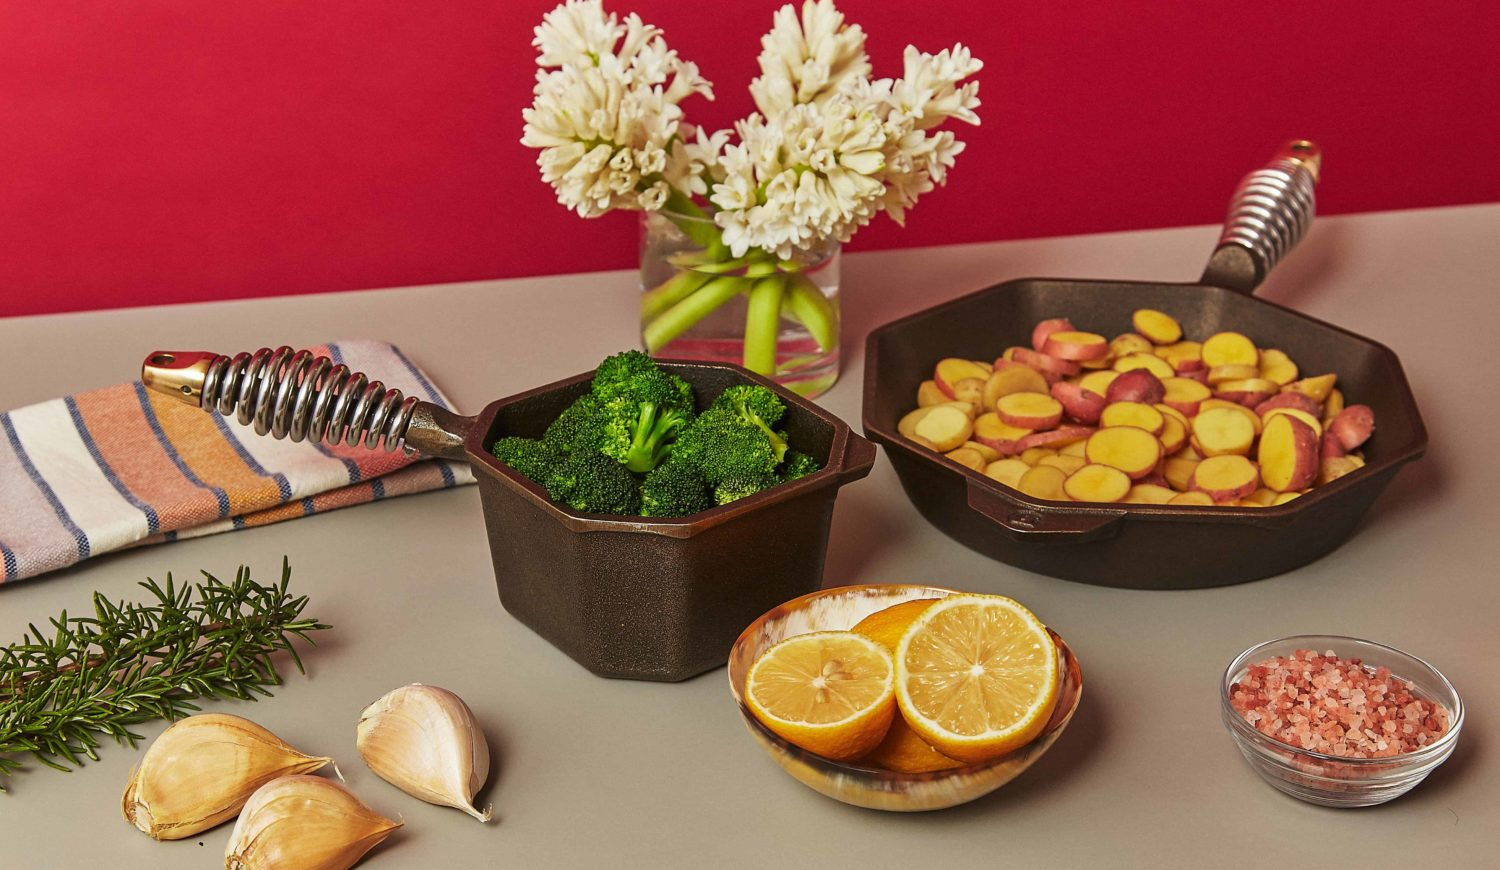 A tabletop setting with a pan full of broccoli and a pan full of cut potatoes